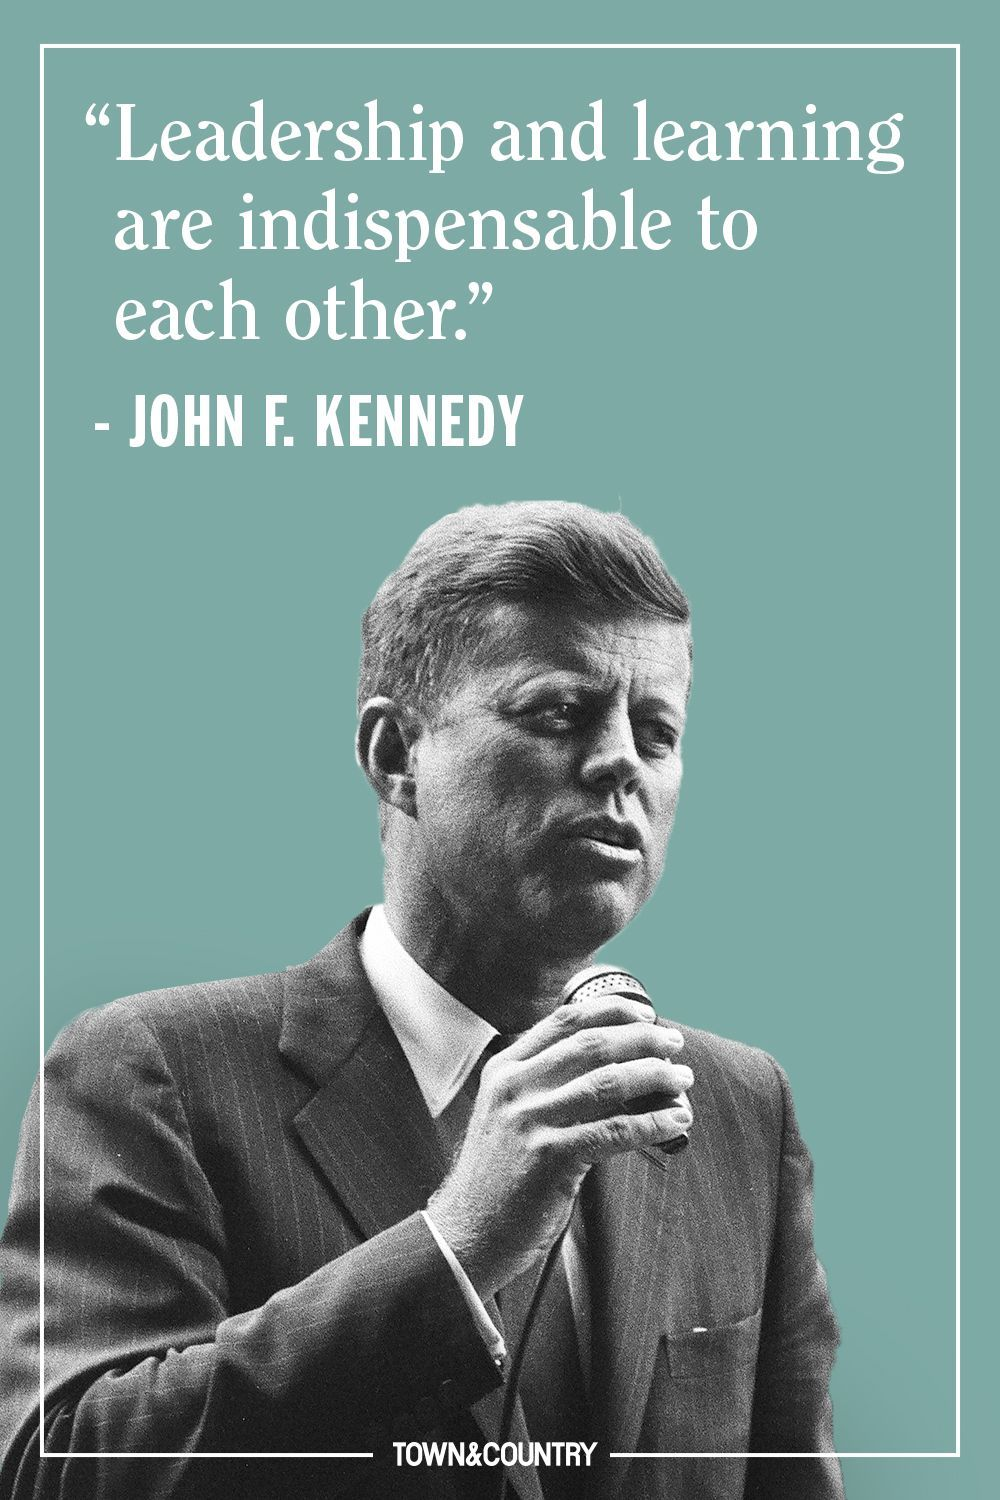 Jfk Quotes Brilliant 12 Jfk Quotes That Prove His Wisdom Is As Legendary As His